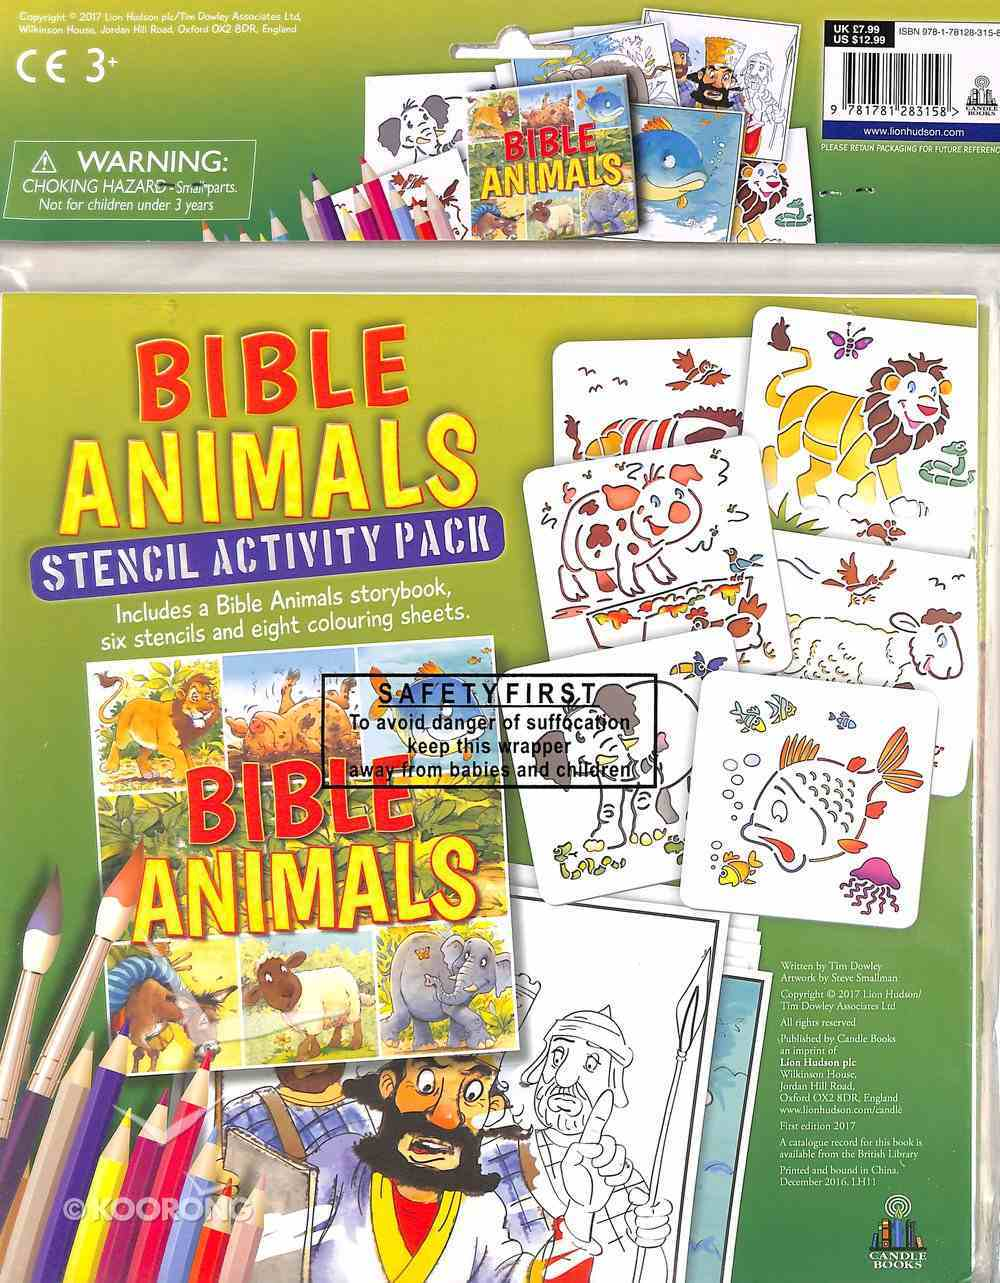 Bible Animals (Stencil Activity Pack) Pack